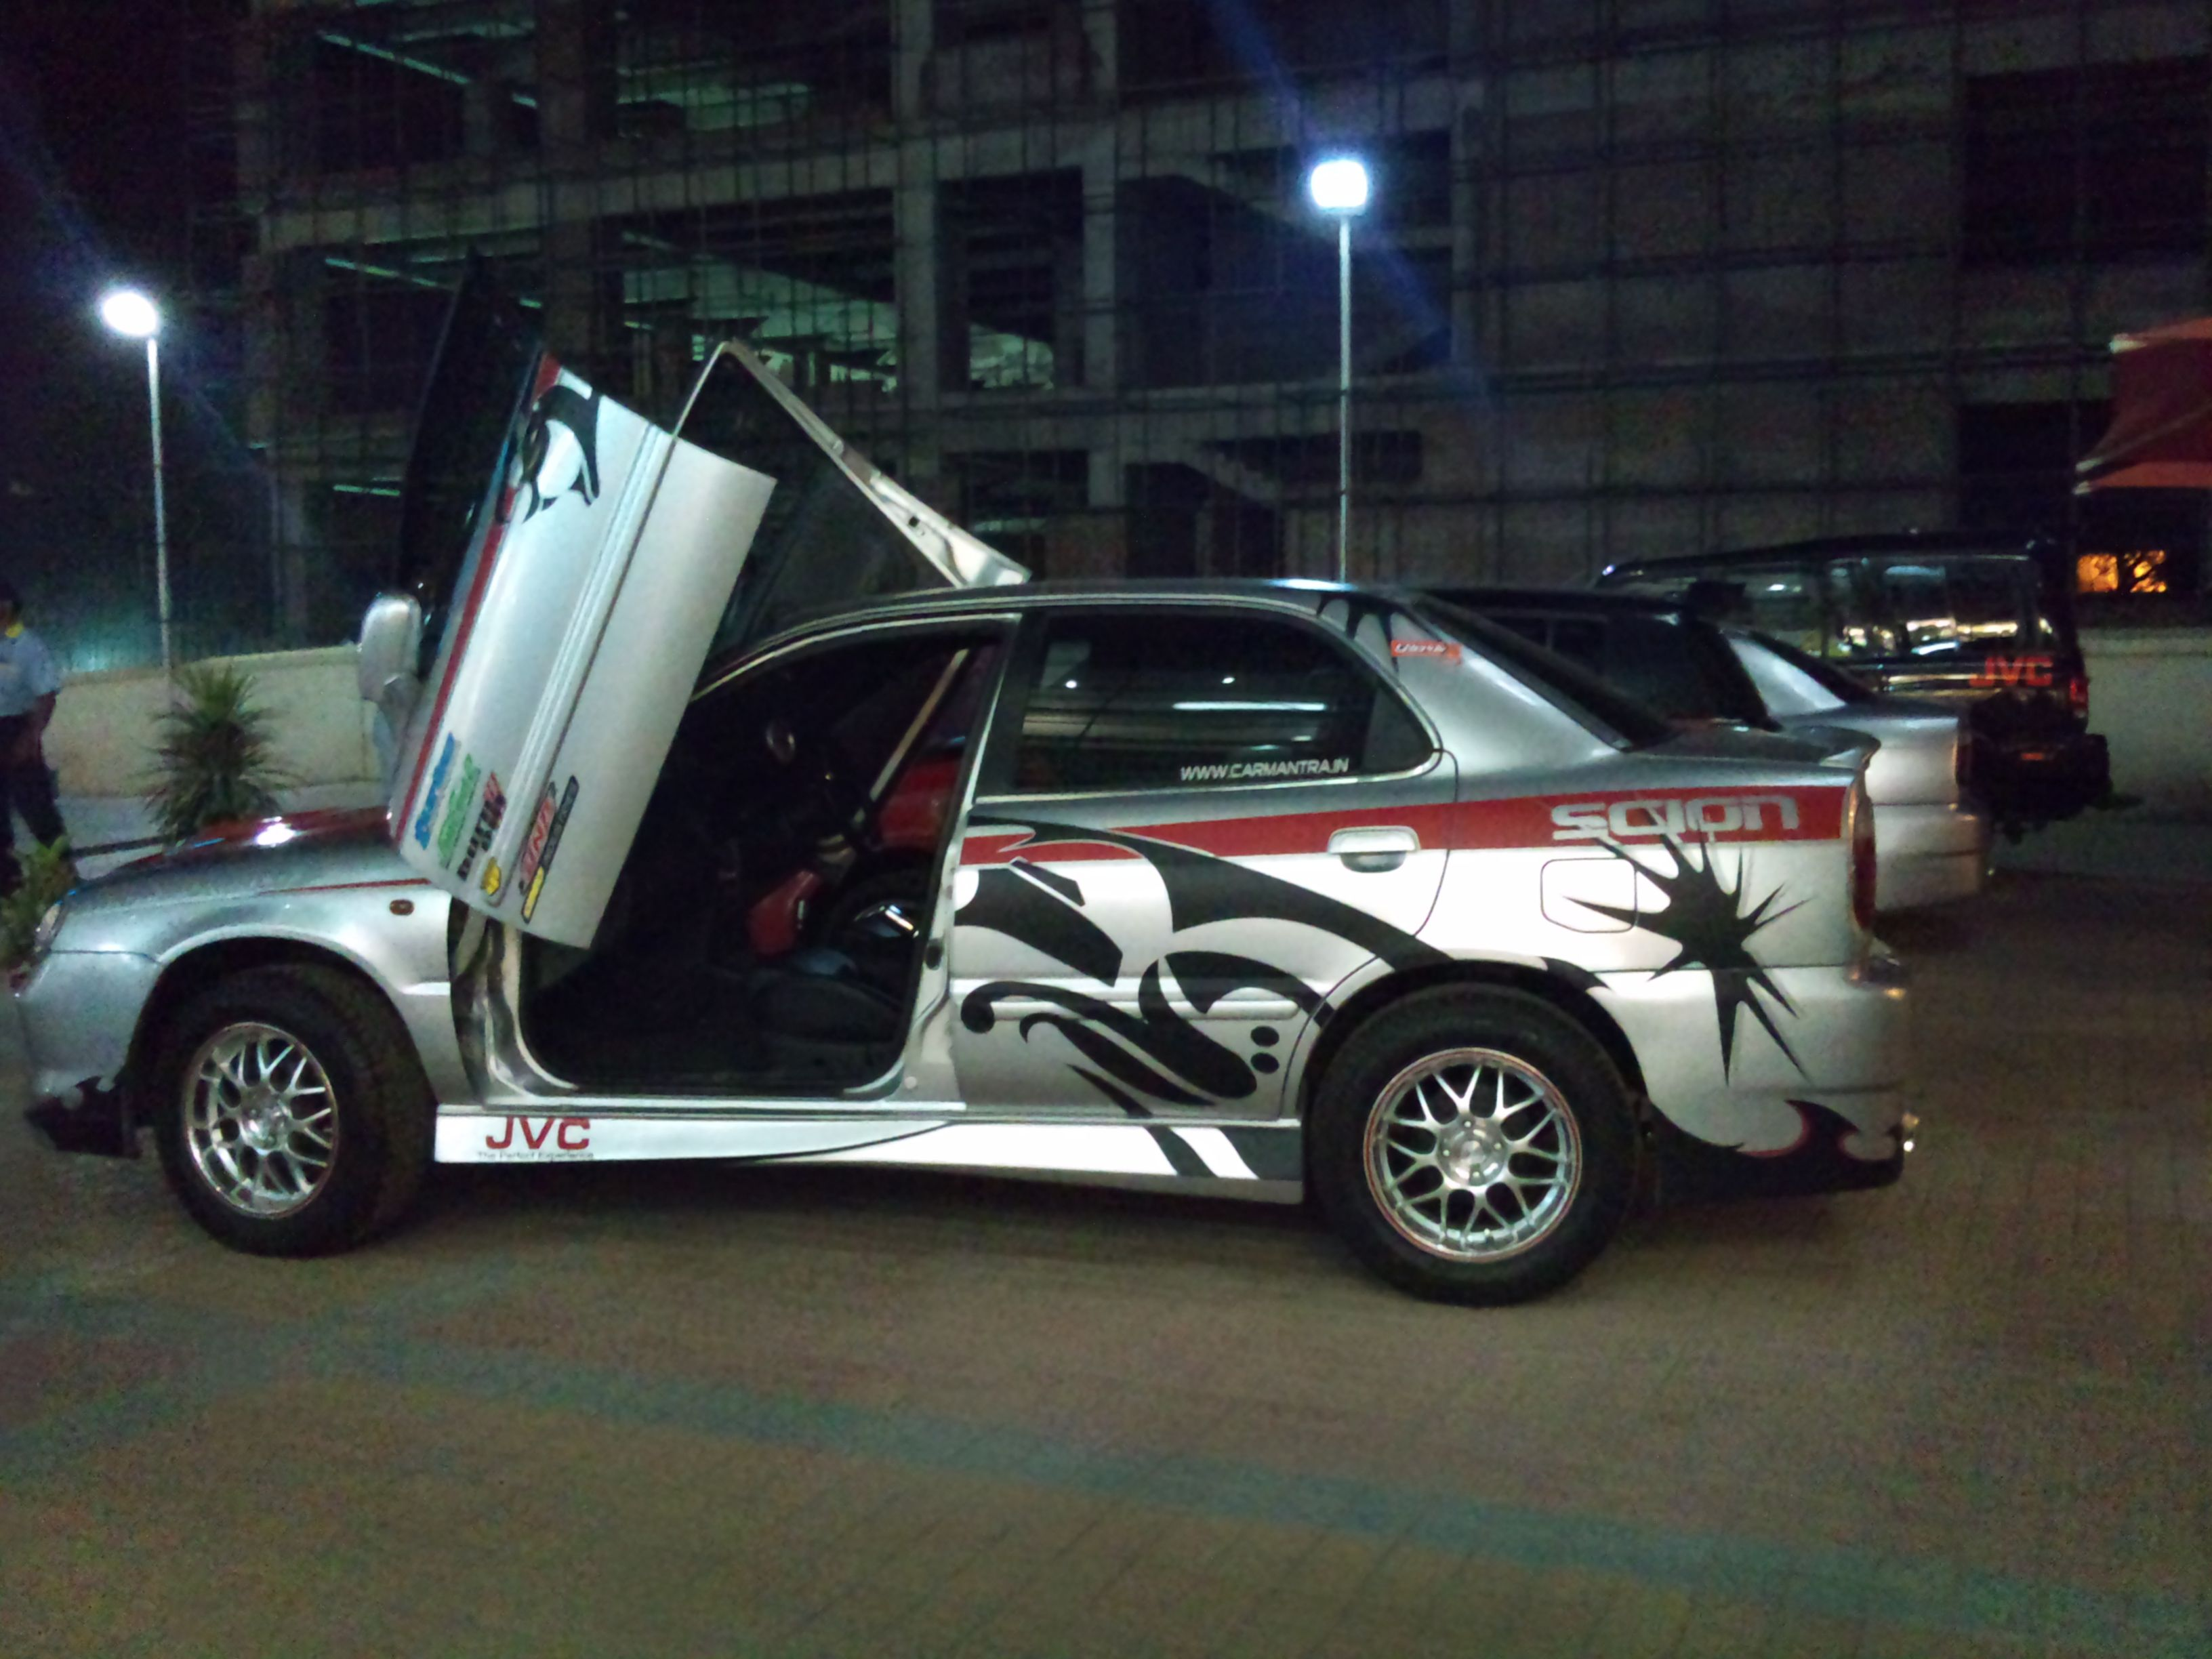 Steeroids In Driven By Passion Modified Cars Car Sharing Suzuki